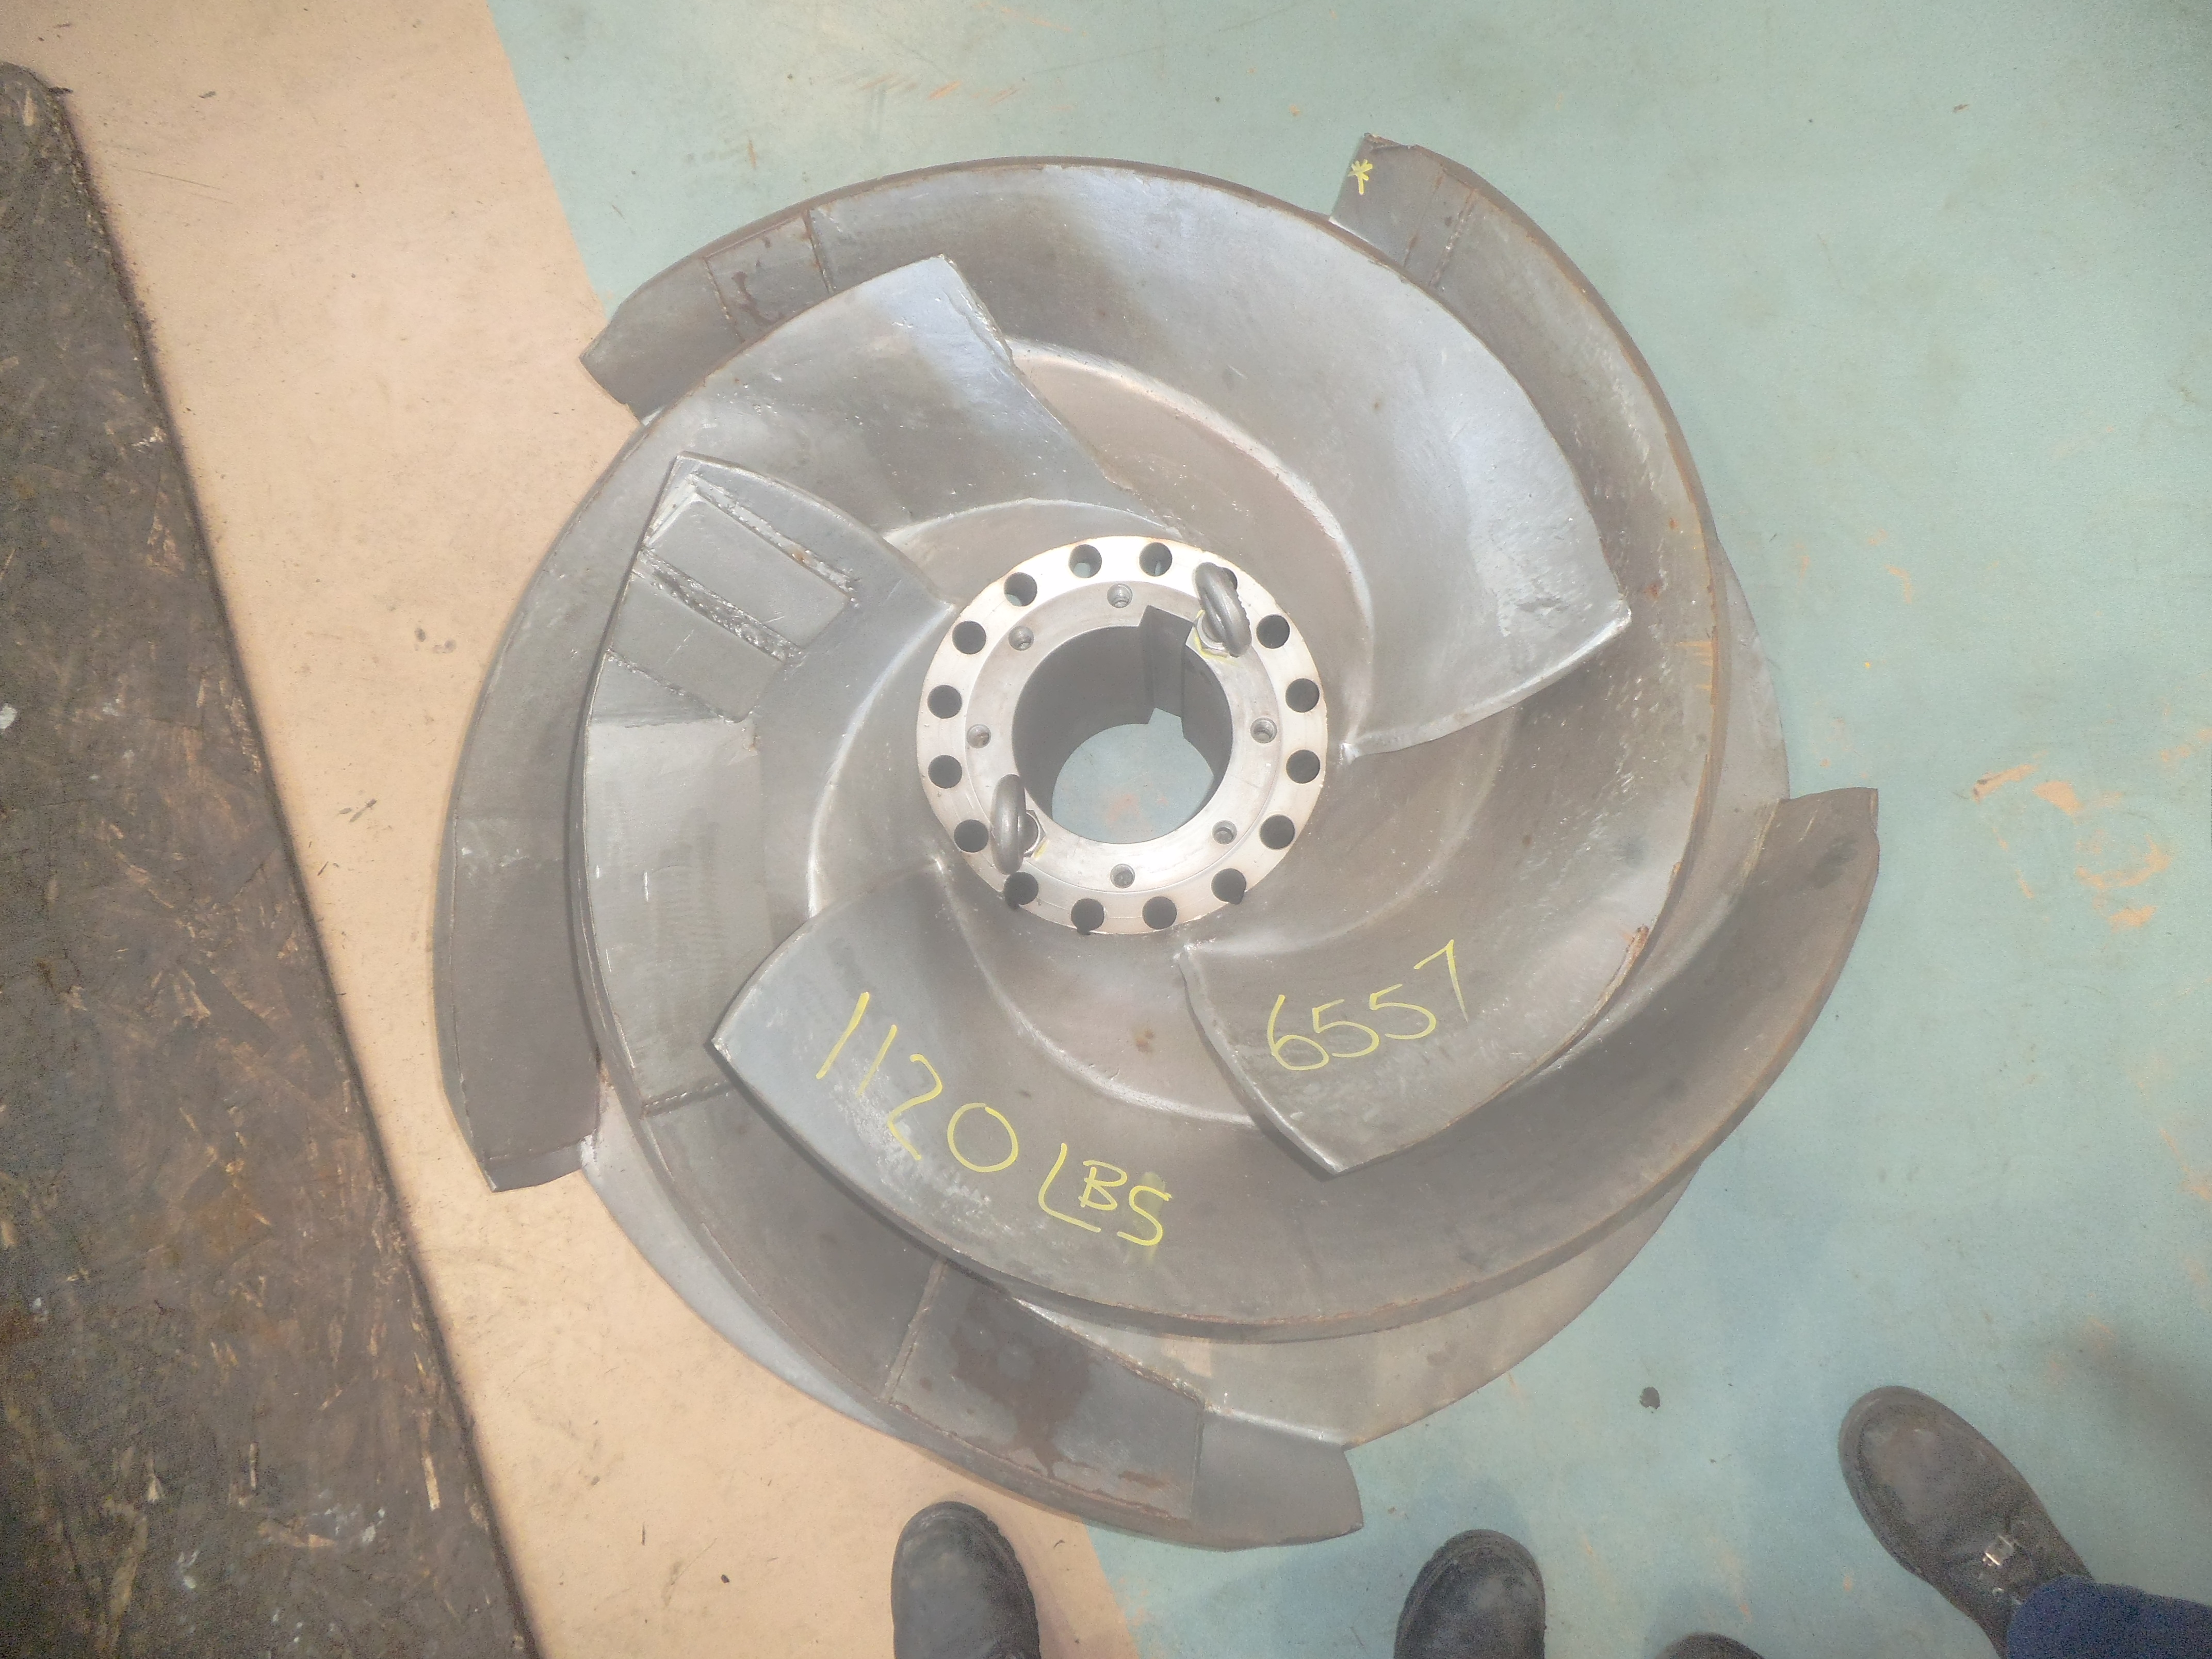 Weights added to impellers